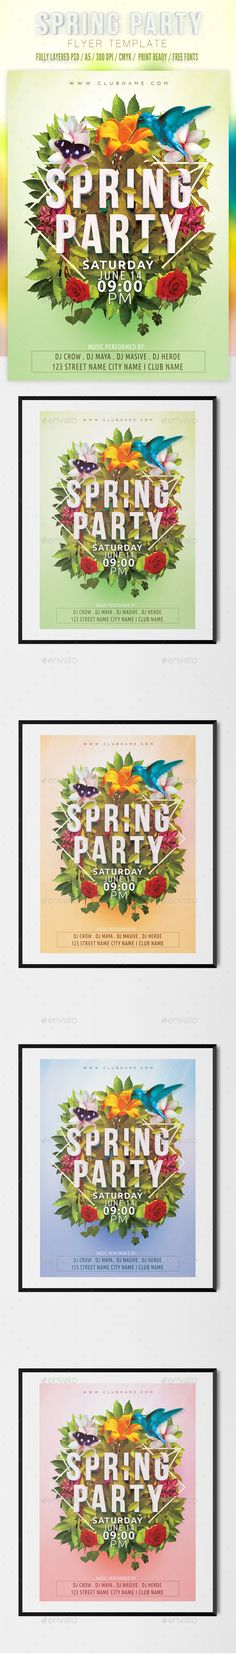 Spring Party Flyer Template (JPG Image, CS, 6.0x8.5, a5, advertisement, celebration, colorful, disco, dj, event, festival, flower, flyer, green, holiday, modern, music, night club, party, poster, print, psd, spring break, spring time, sun, template)